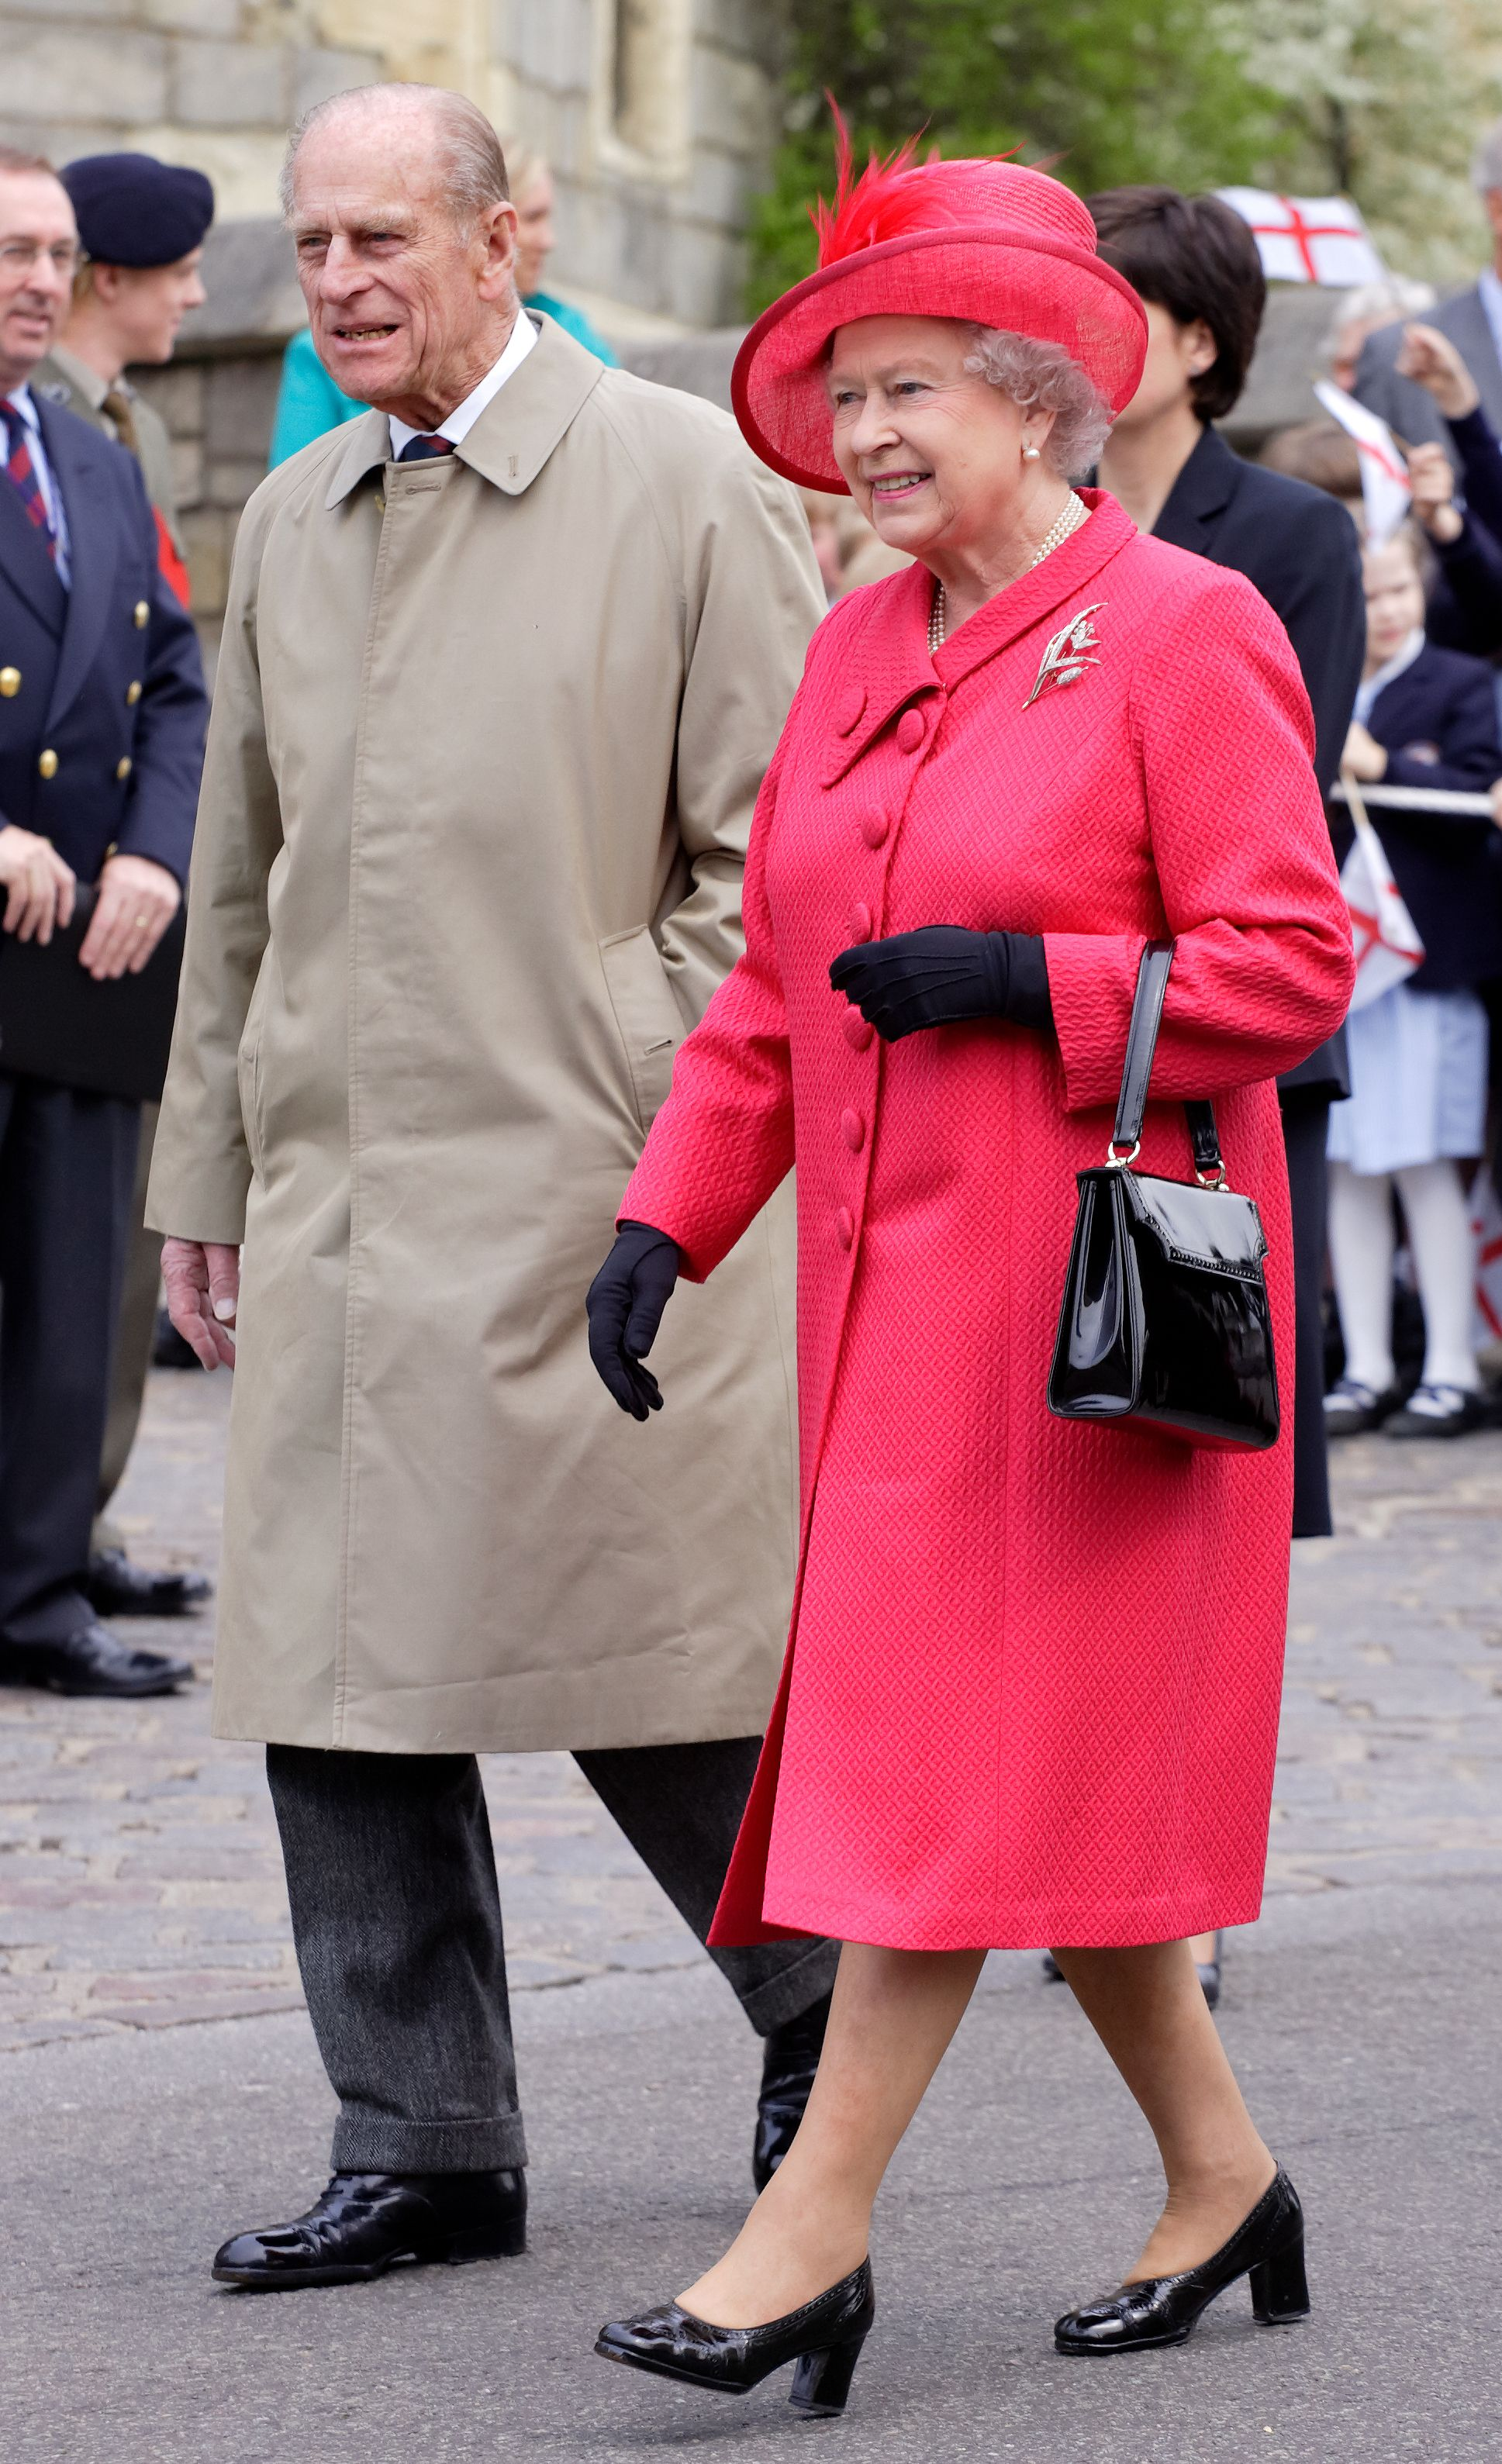 Prince Philips and Queen Elizabeth on April 21, 2006 in Windsor, England. | Photo: Getty Images